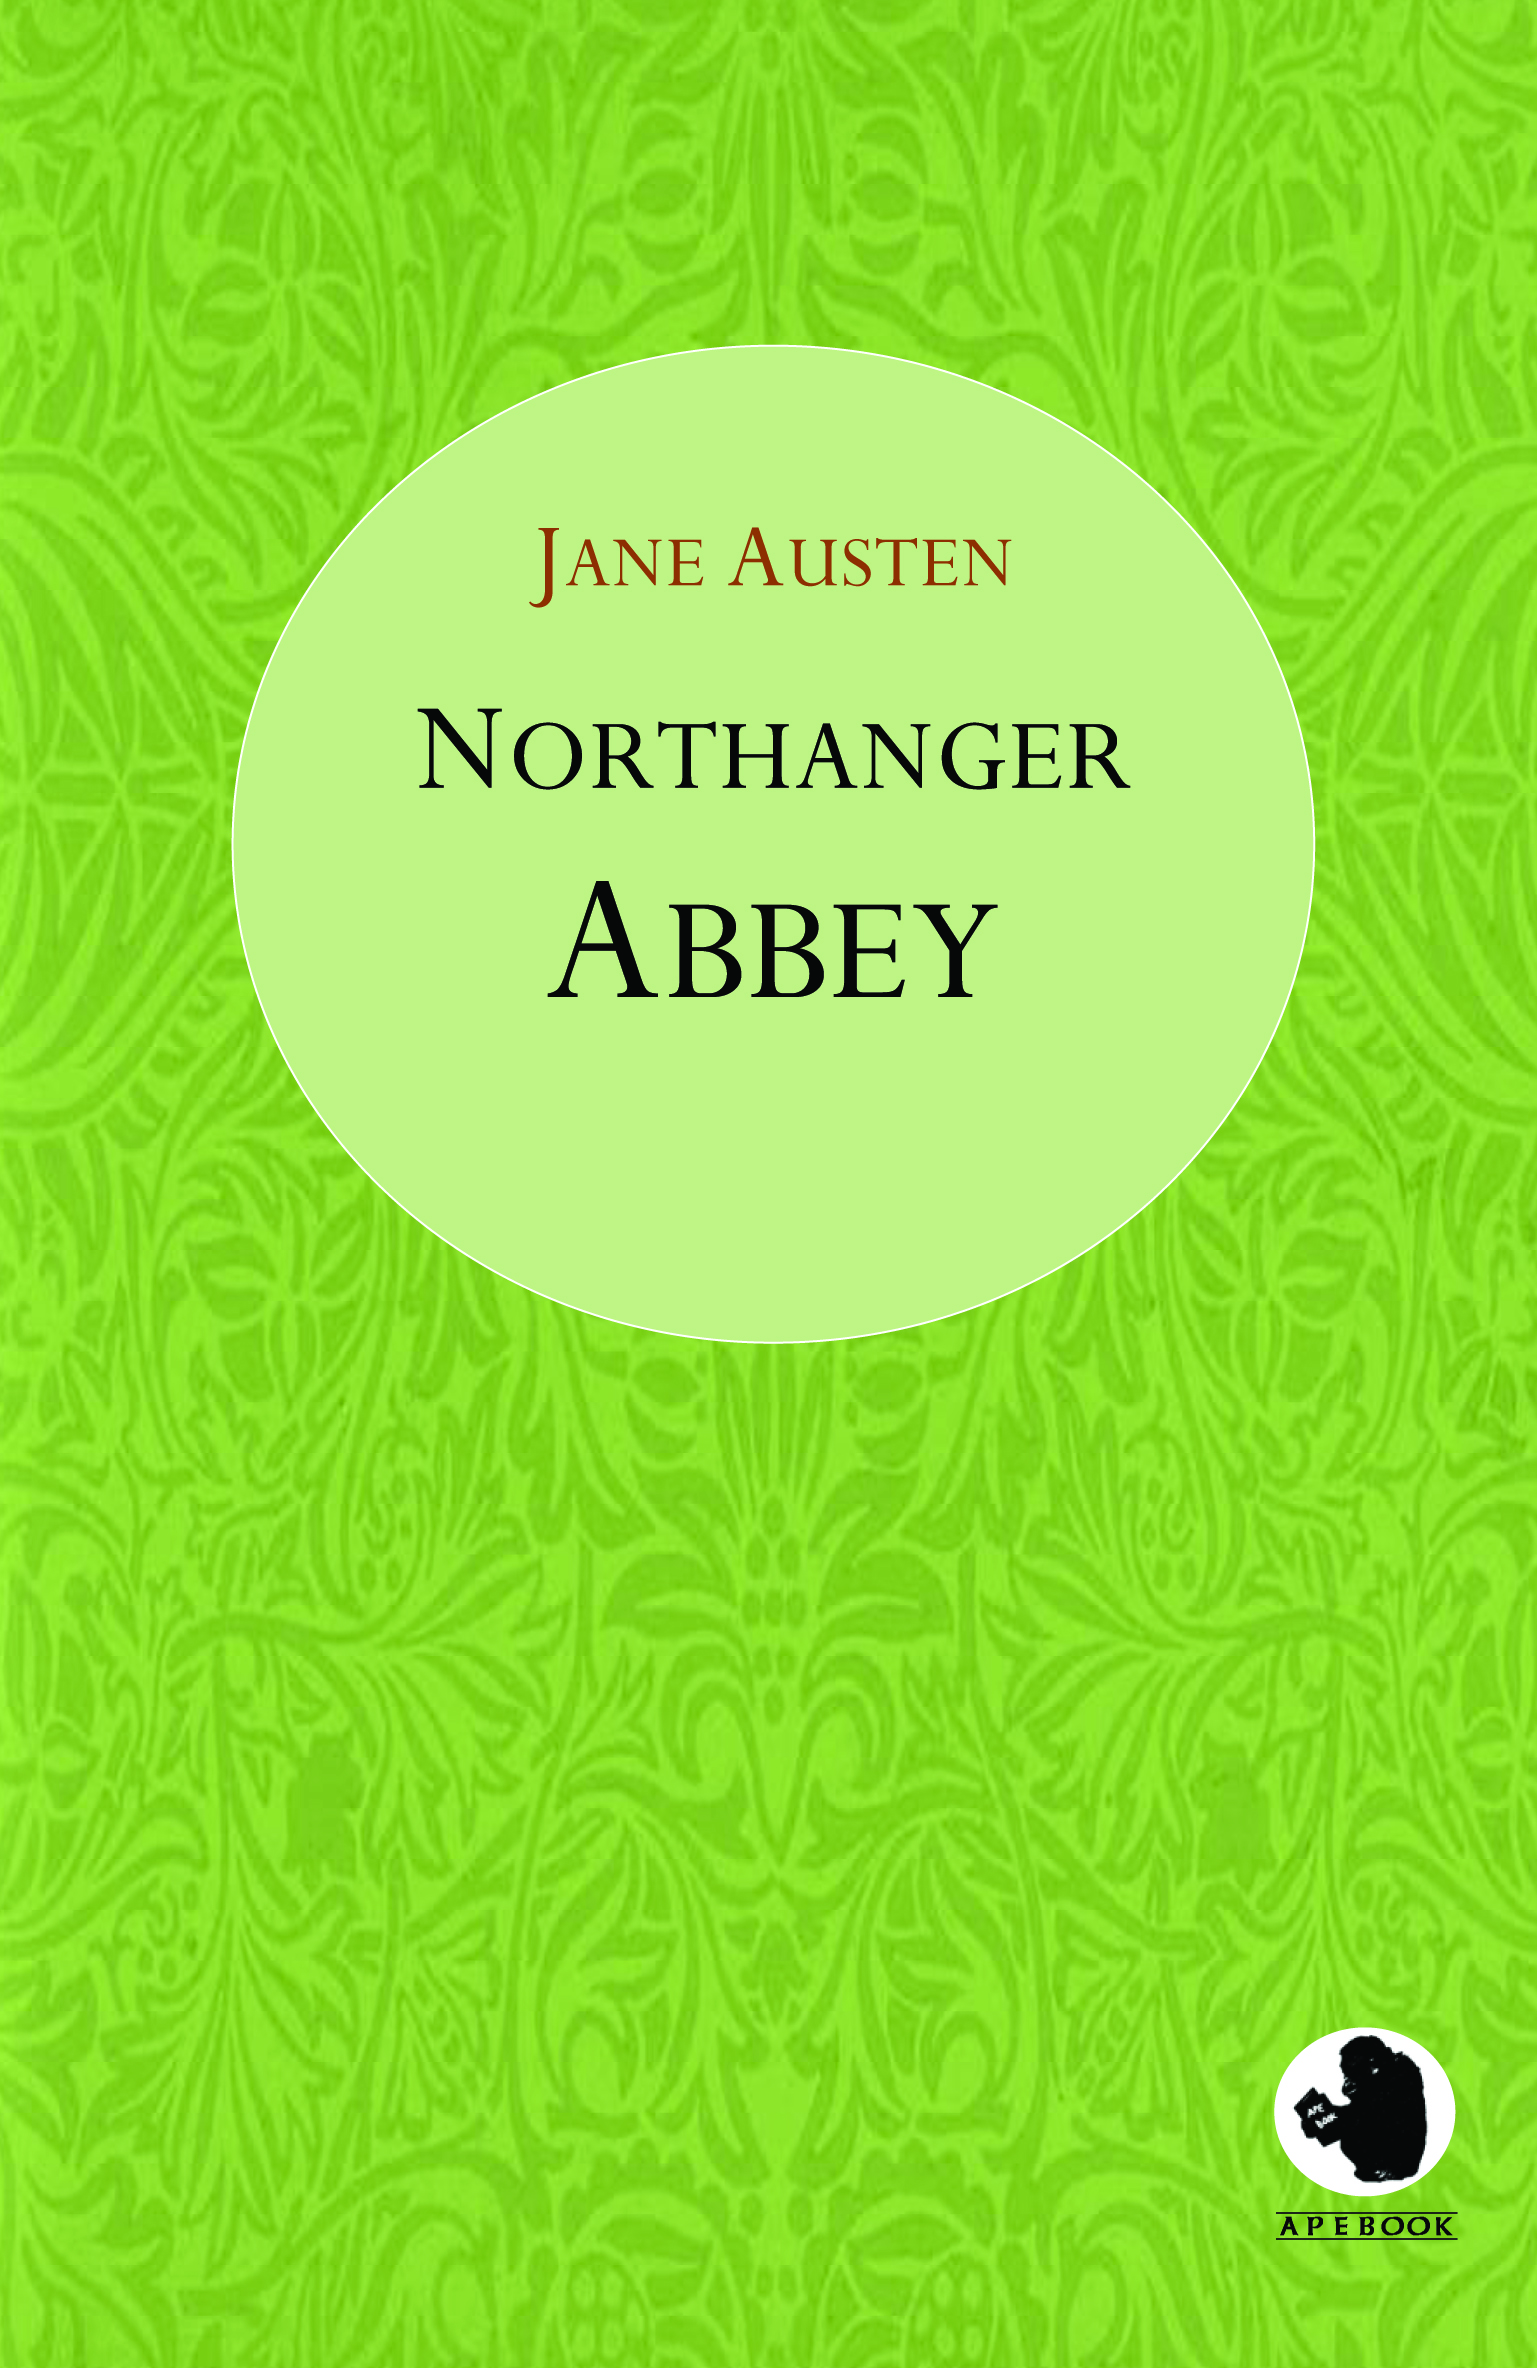 friendship and love in jane austens northanger abbey Remy bumppo theatre company presents jane austen's northanger abbey adapted by tim  love & friendship  jane austens northanger abbey.